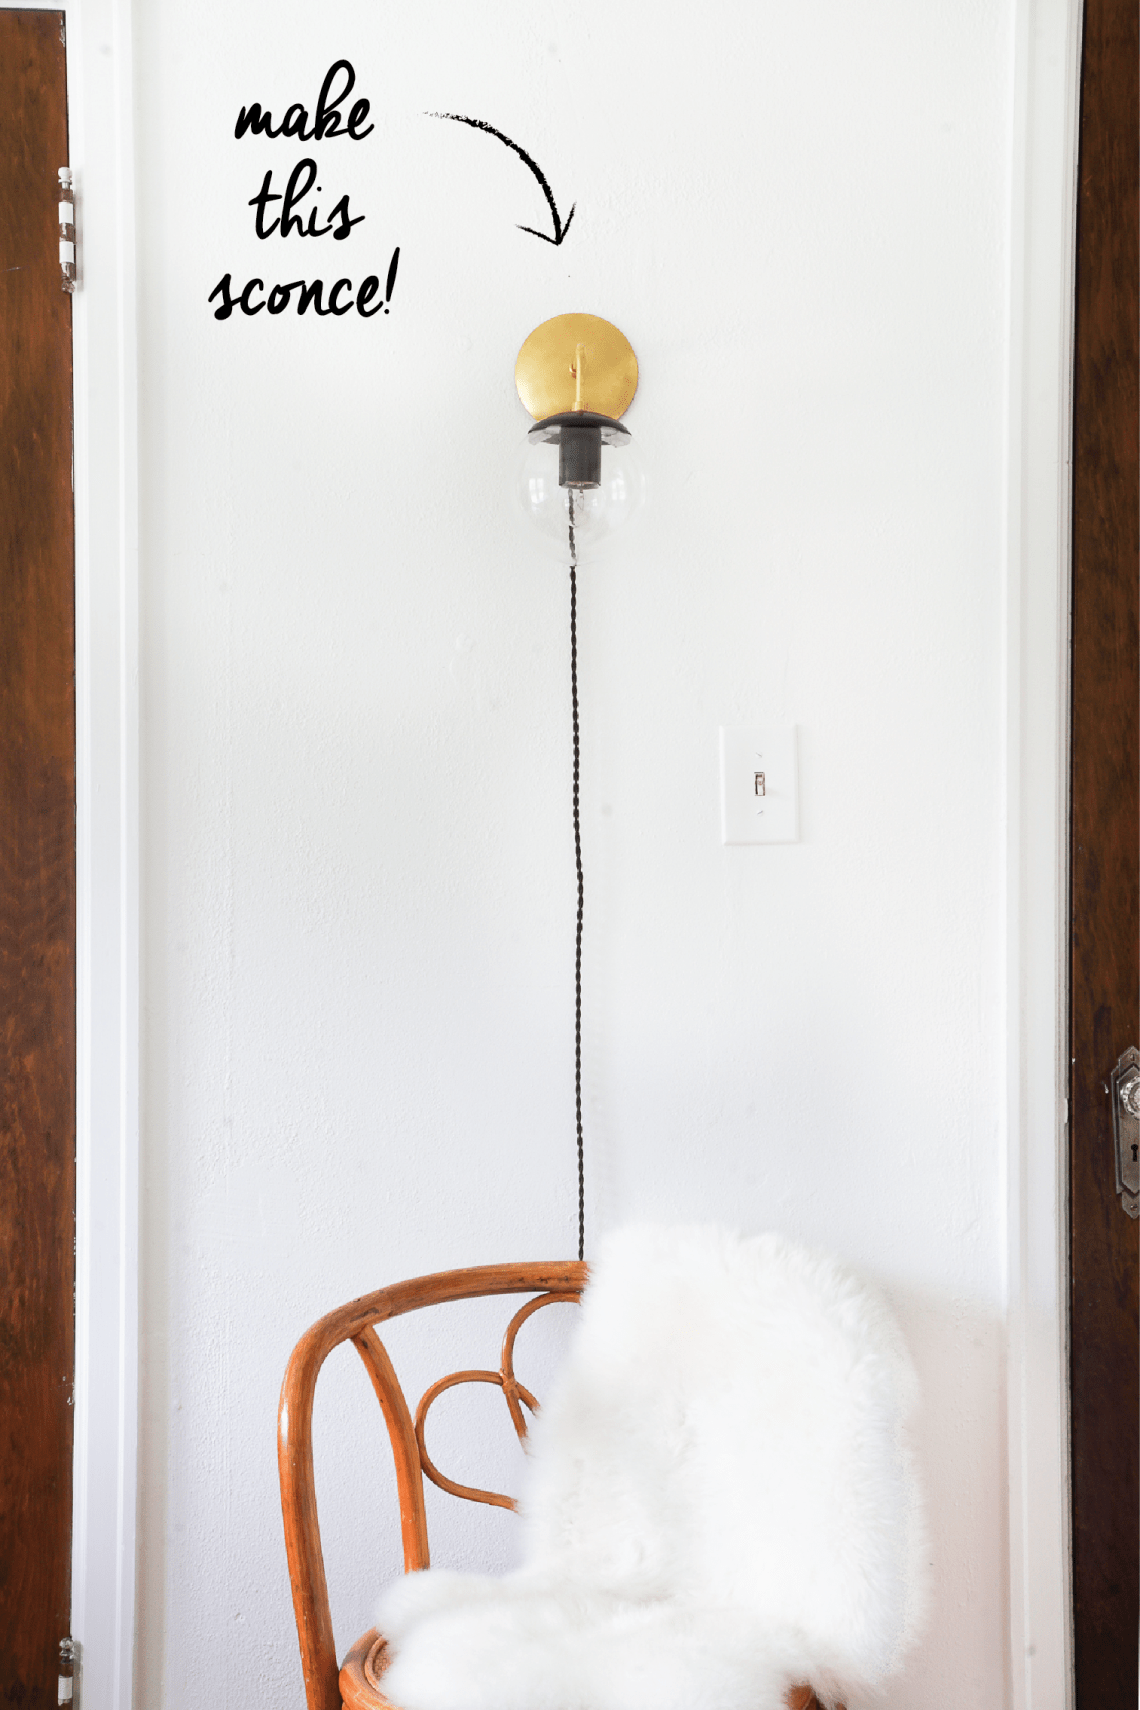 Learn how to build modern sconce lighting with my new Skillshare class!